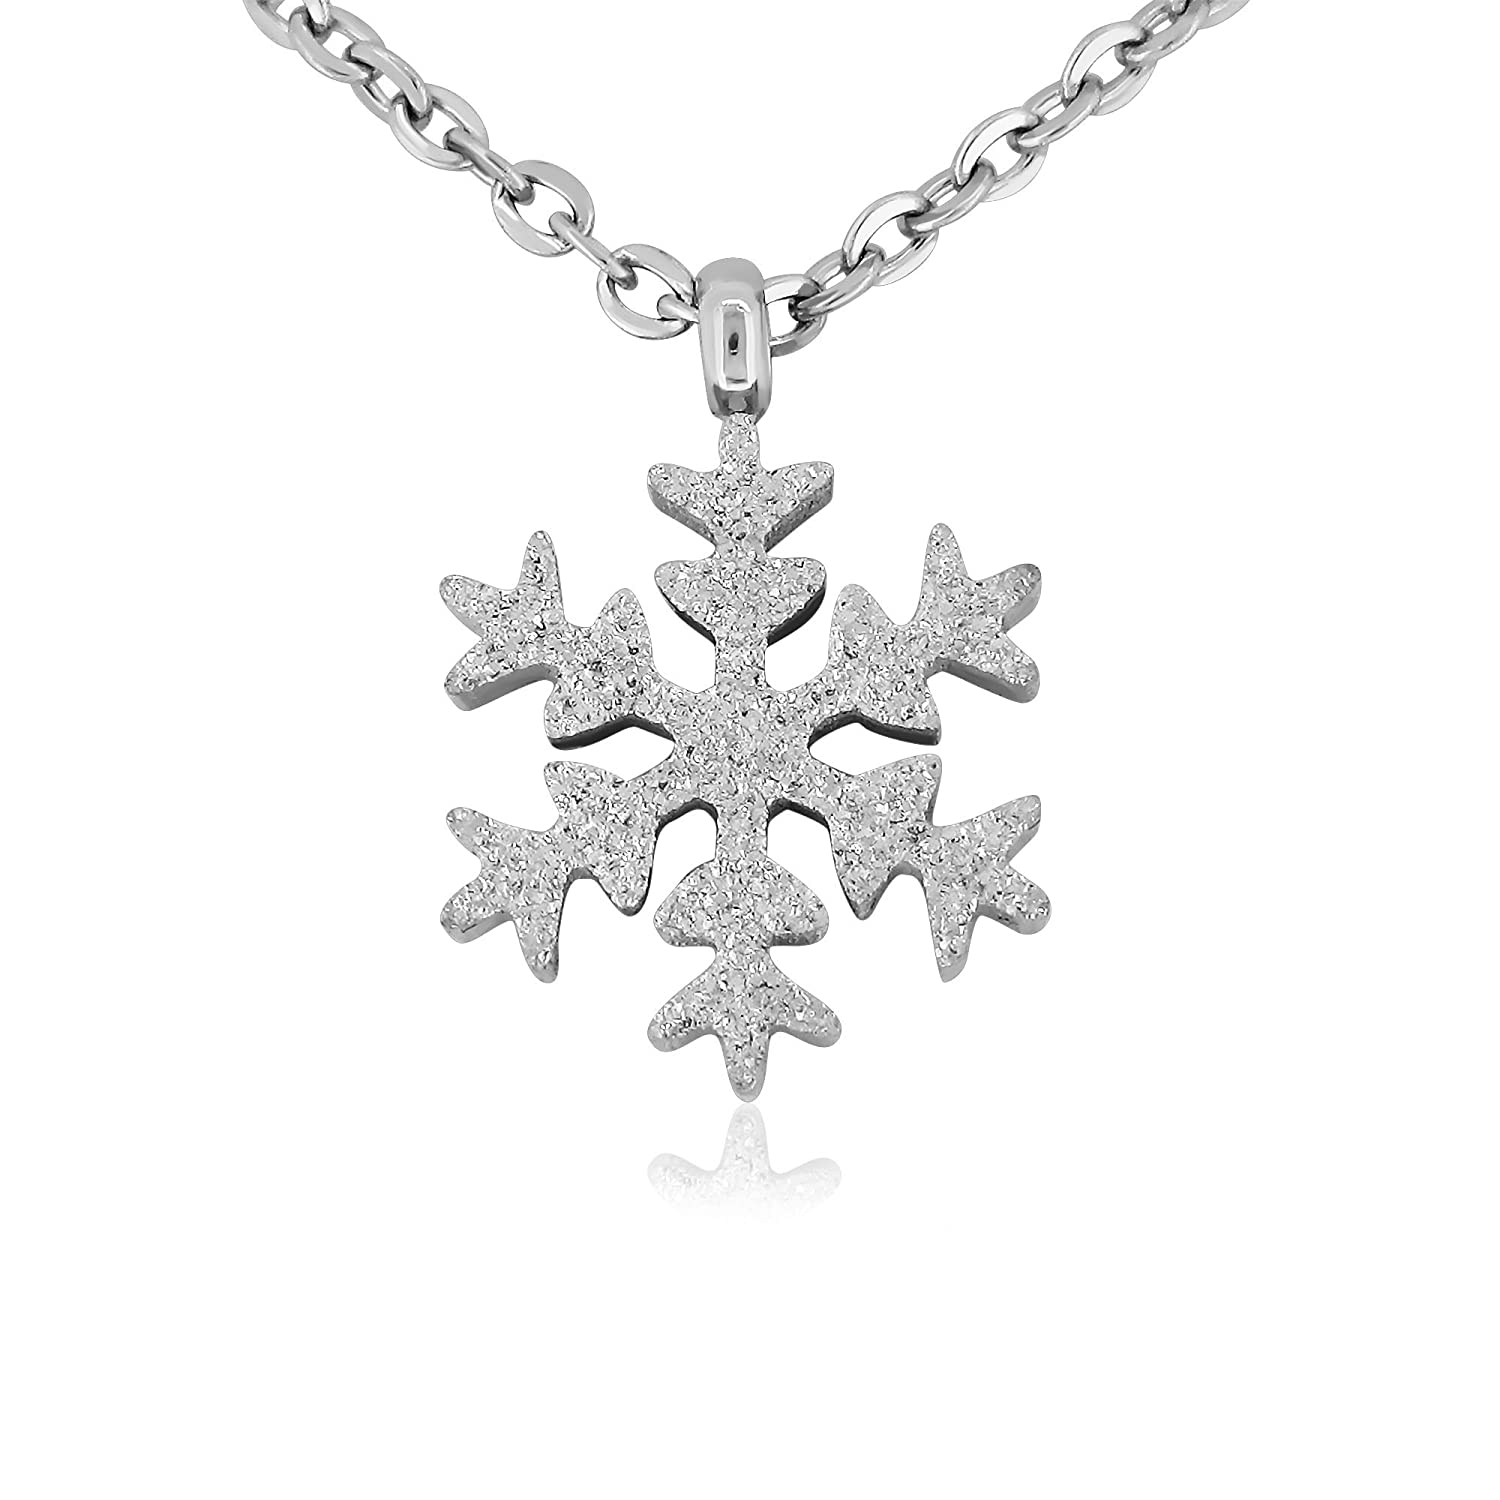 Pure 316 - Surgical Stainless Steel (316L) Snowflake Necklace - Hypoallergenic Leviev Ltd. JKN-026